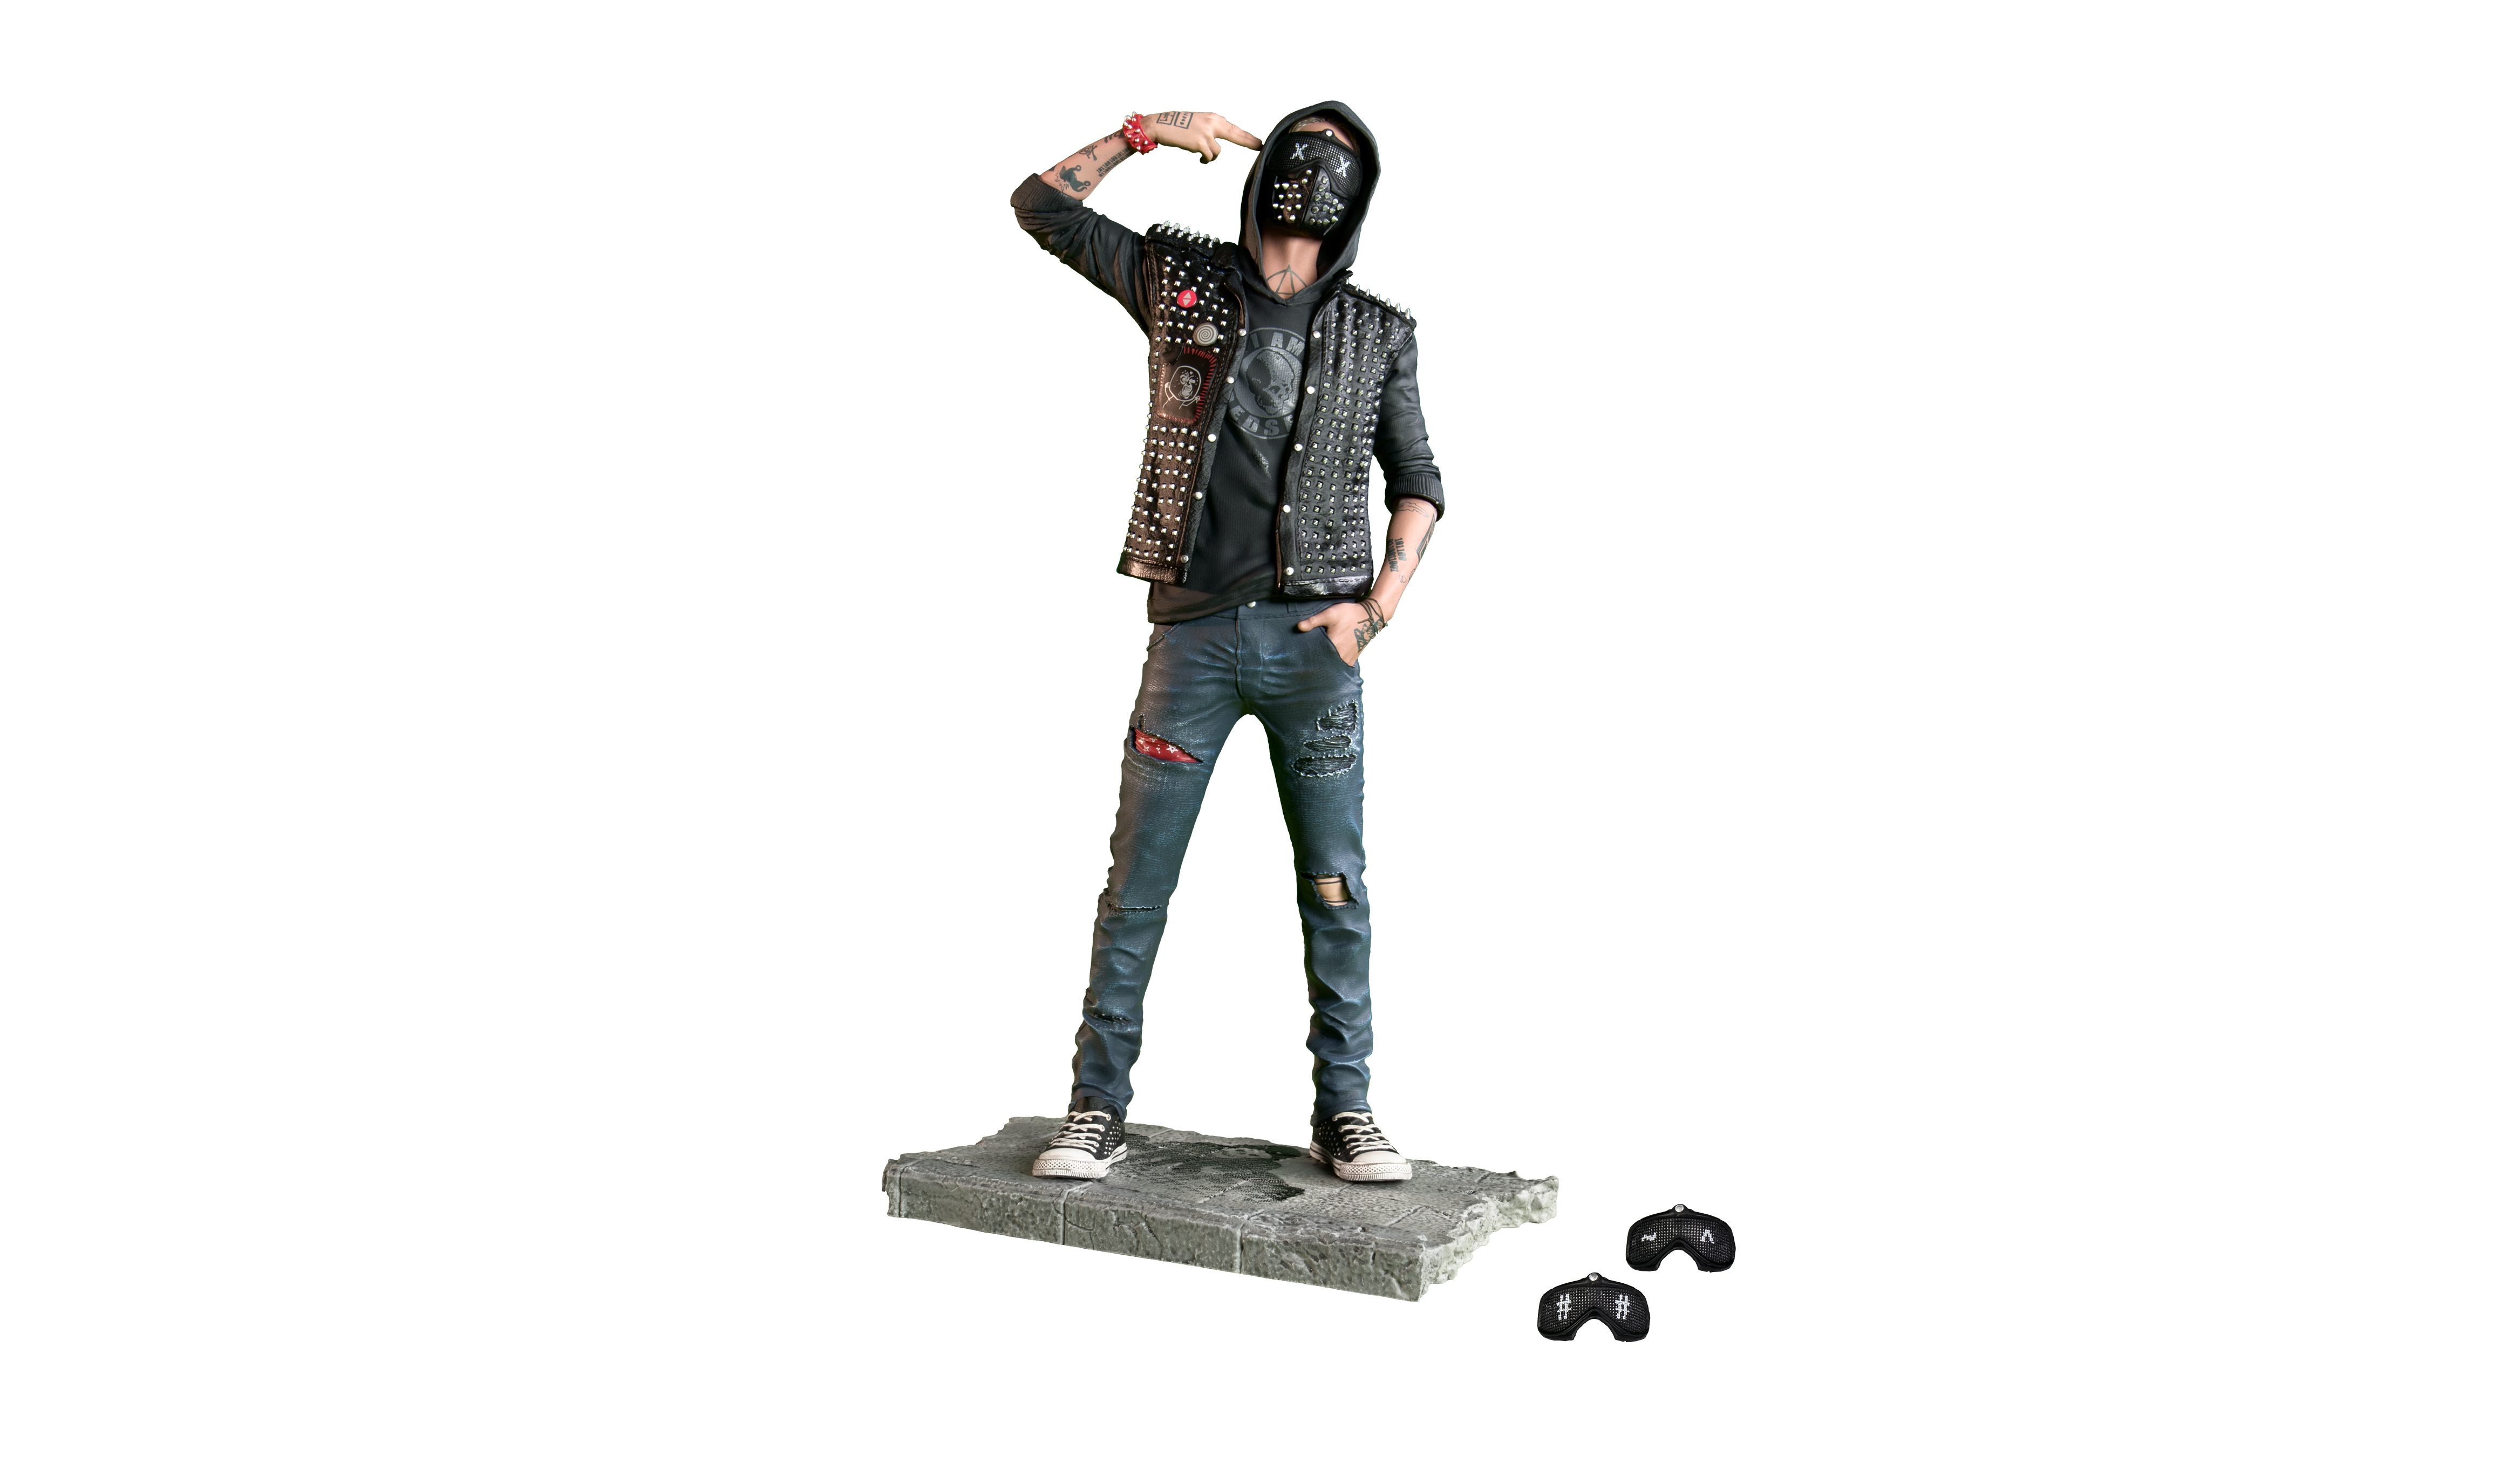 Watch_dogs png wrench. Watch dogs figurine the